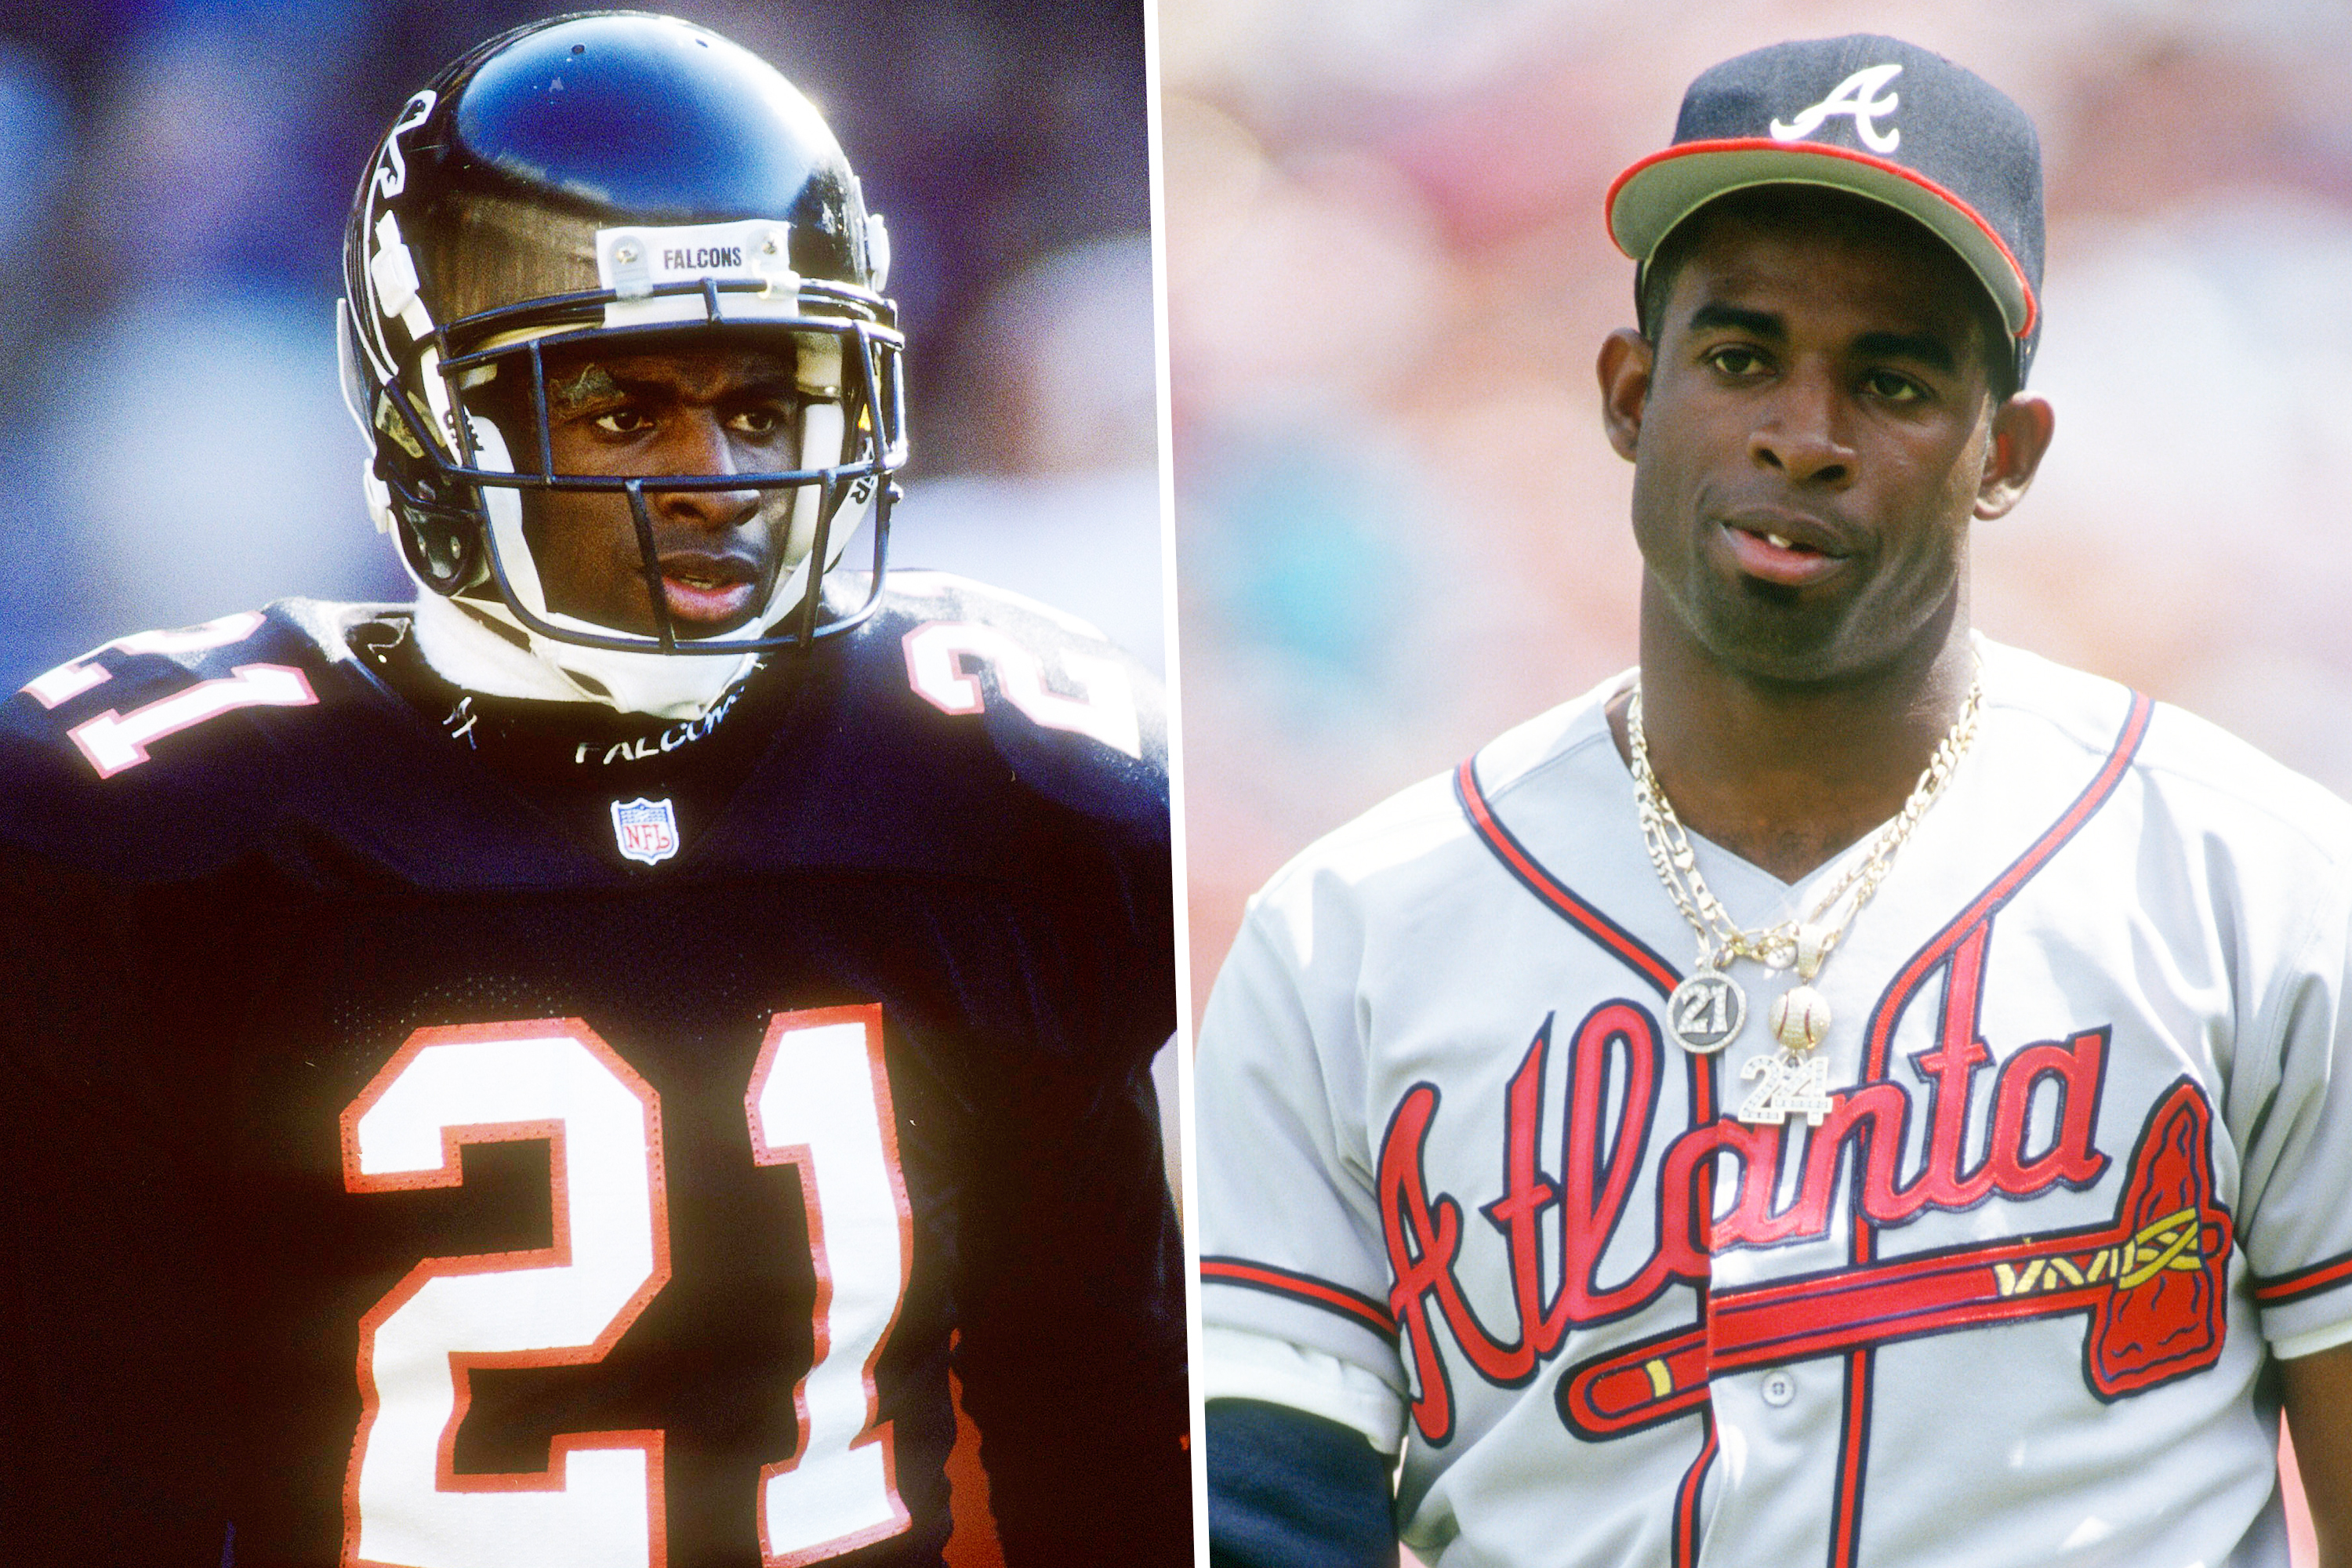 official photos 26c4a 4c206 The Day Deion Did Both: 25 Years Ago, Prime Time Suited Up ...